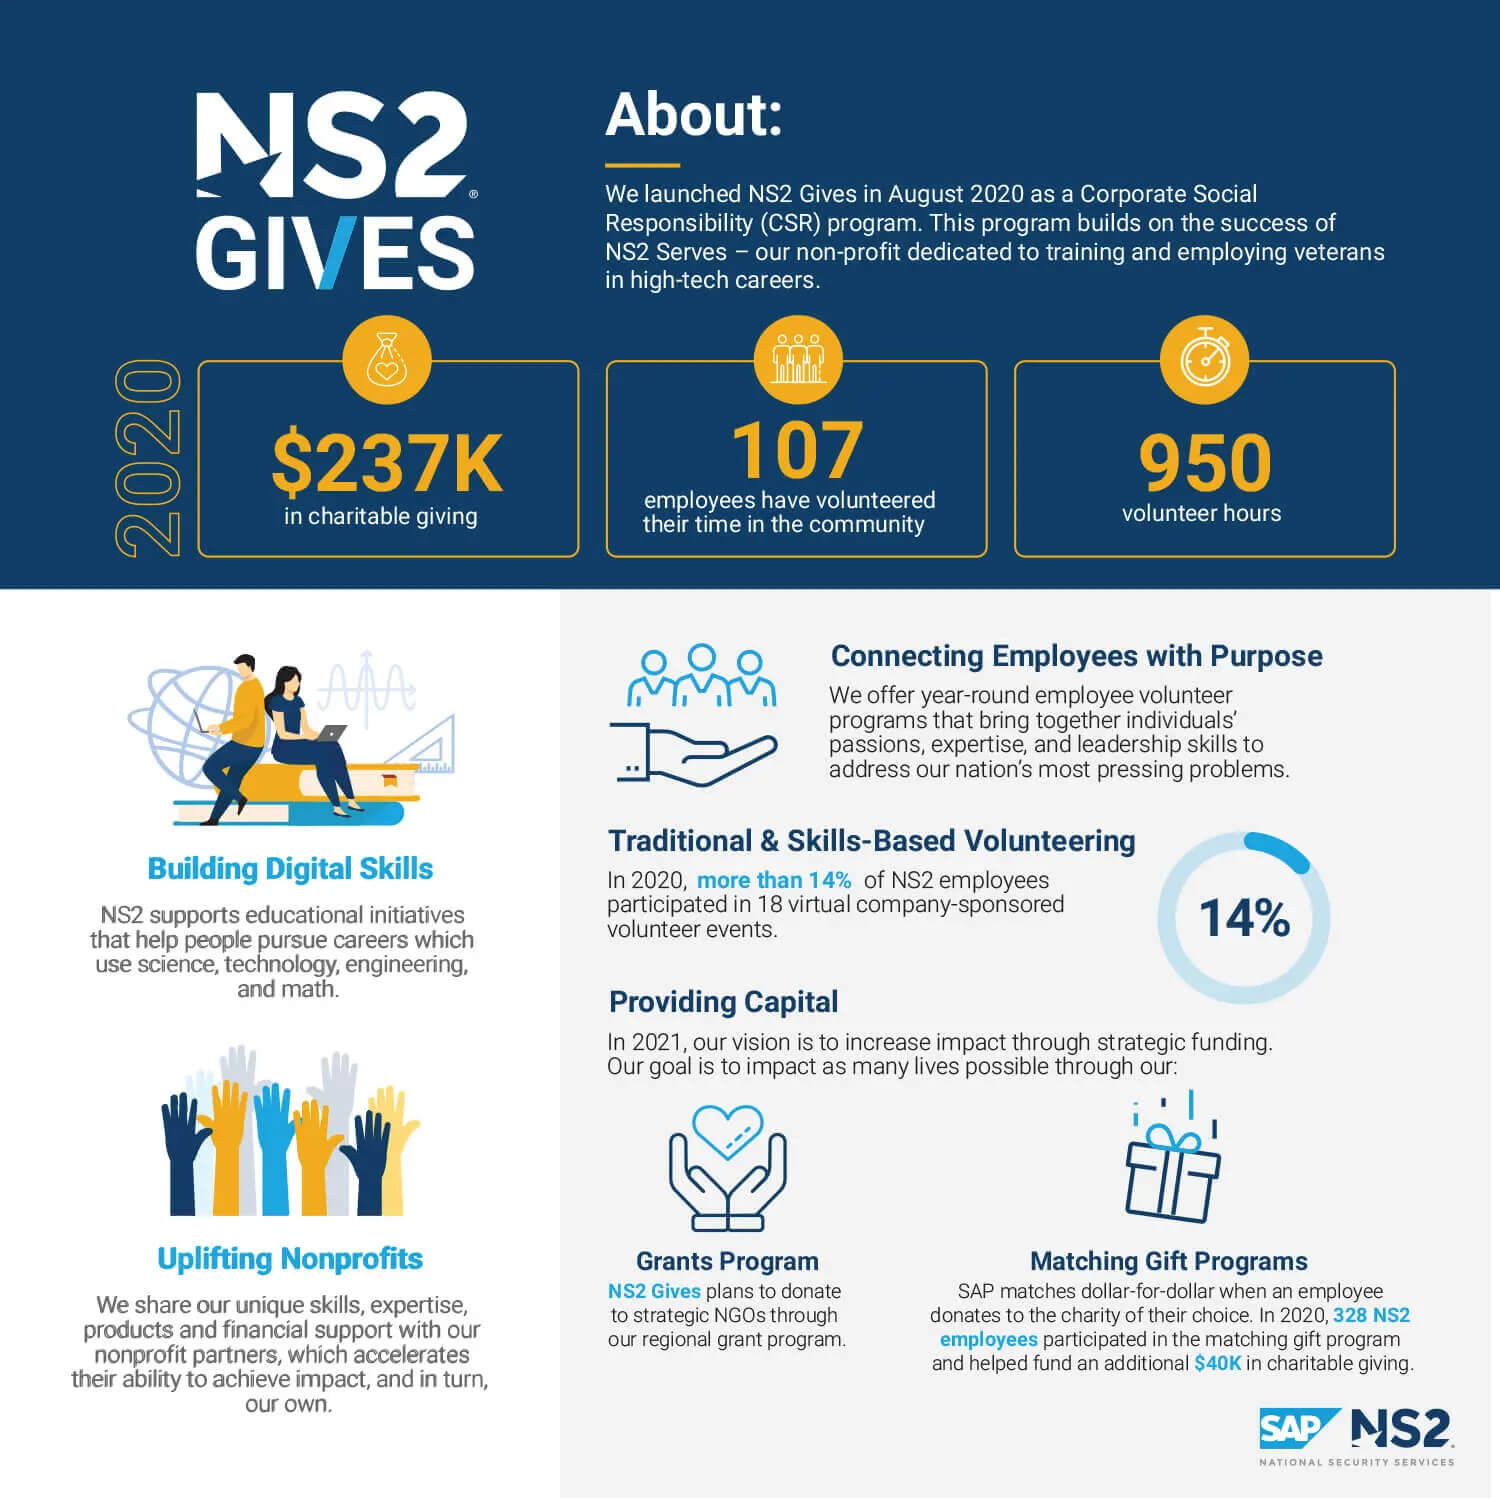 ns2-gives-infographic_dec2020-3-1